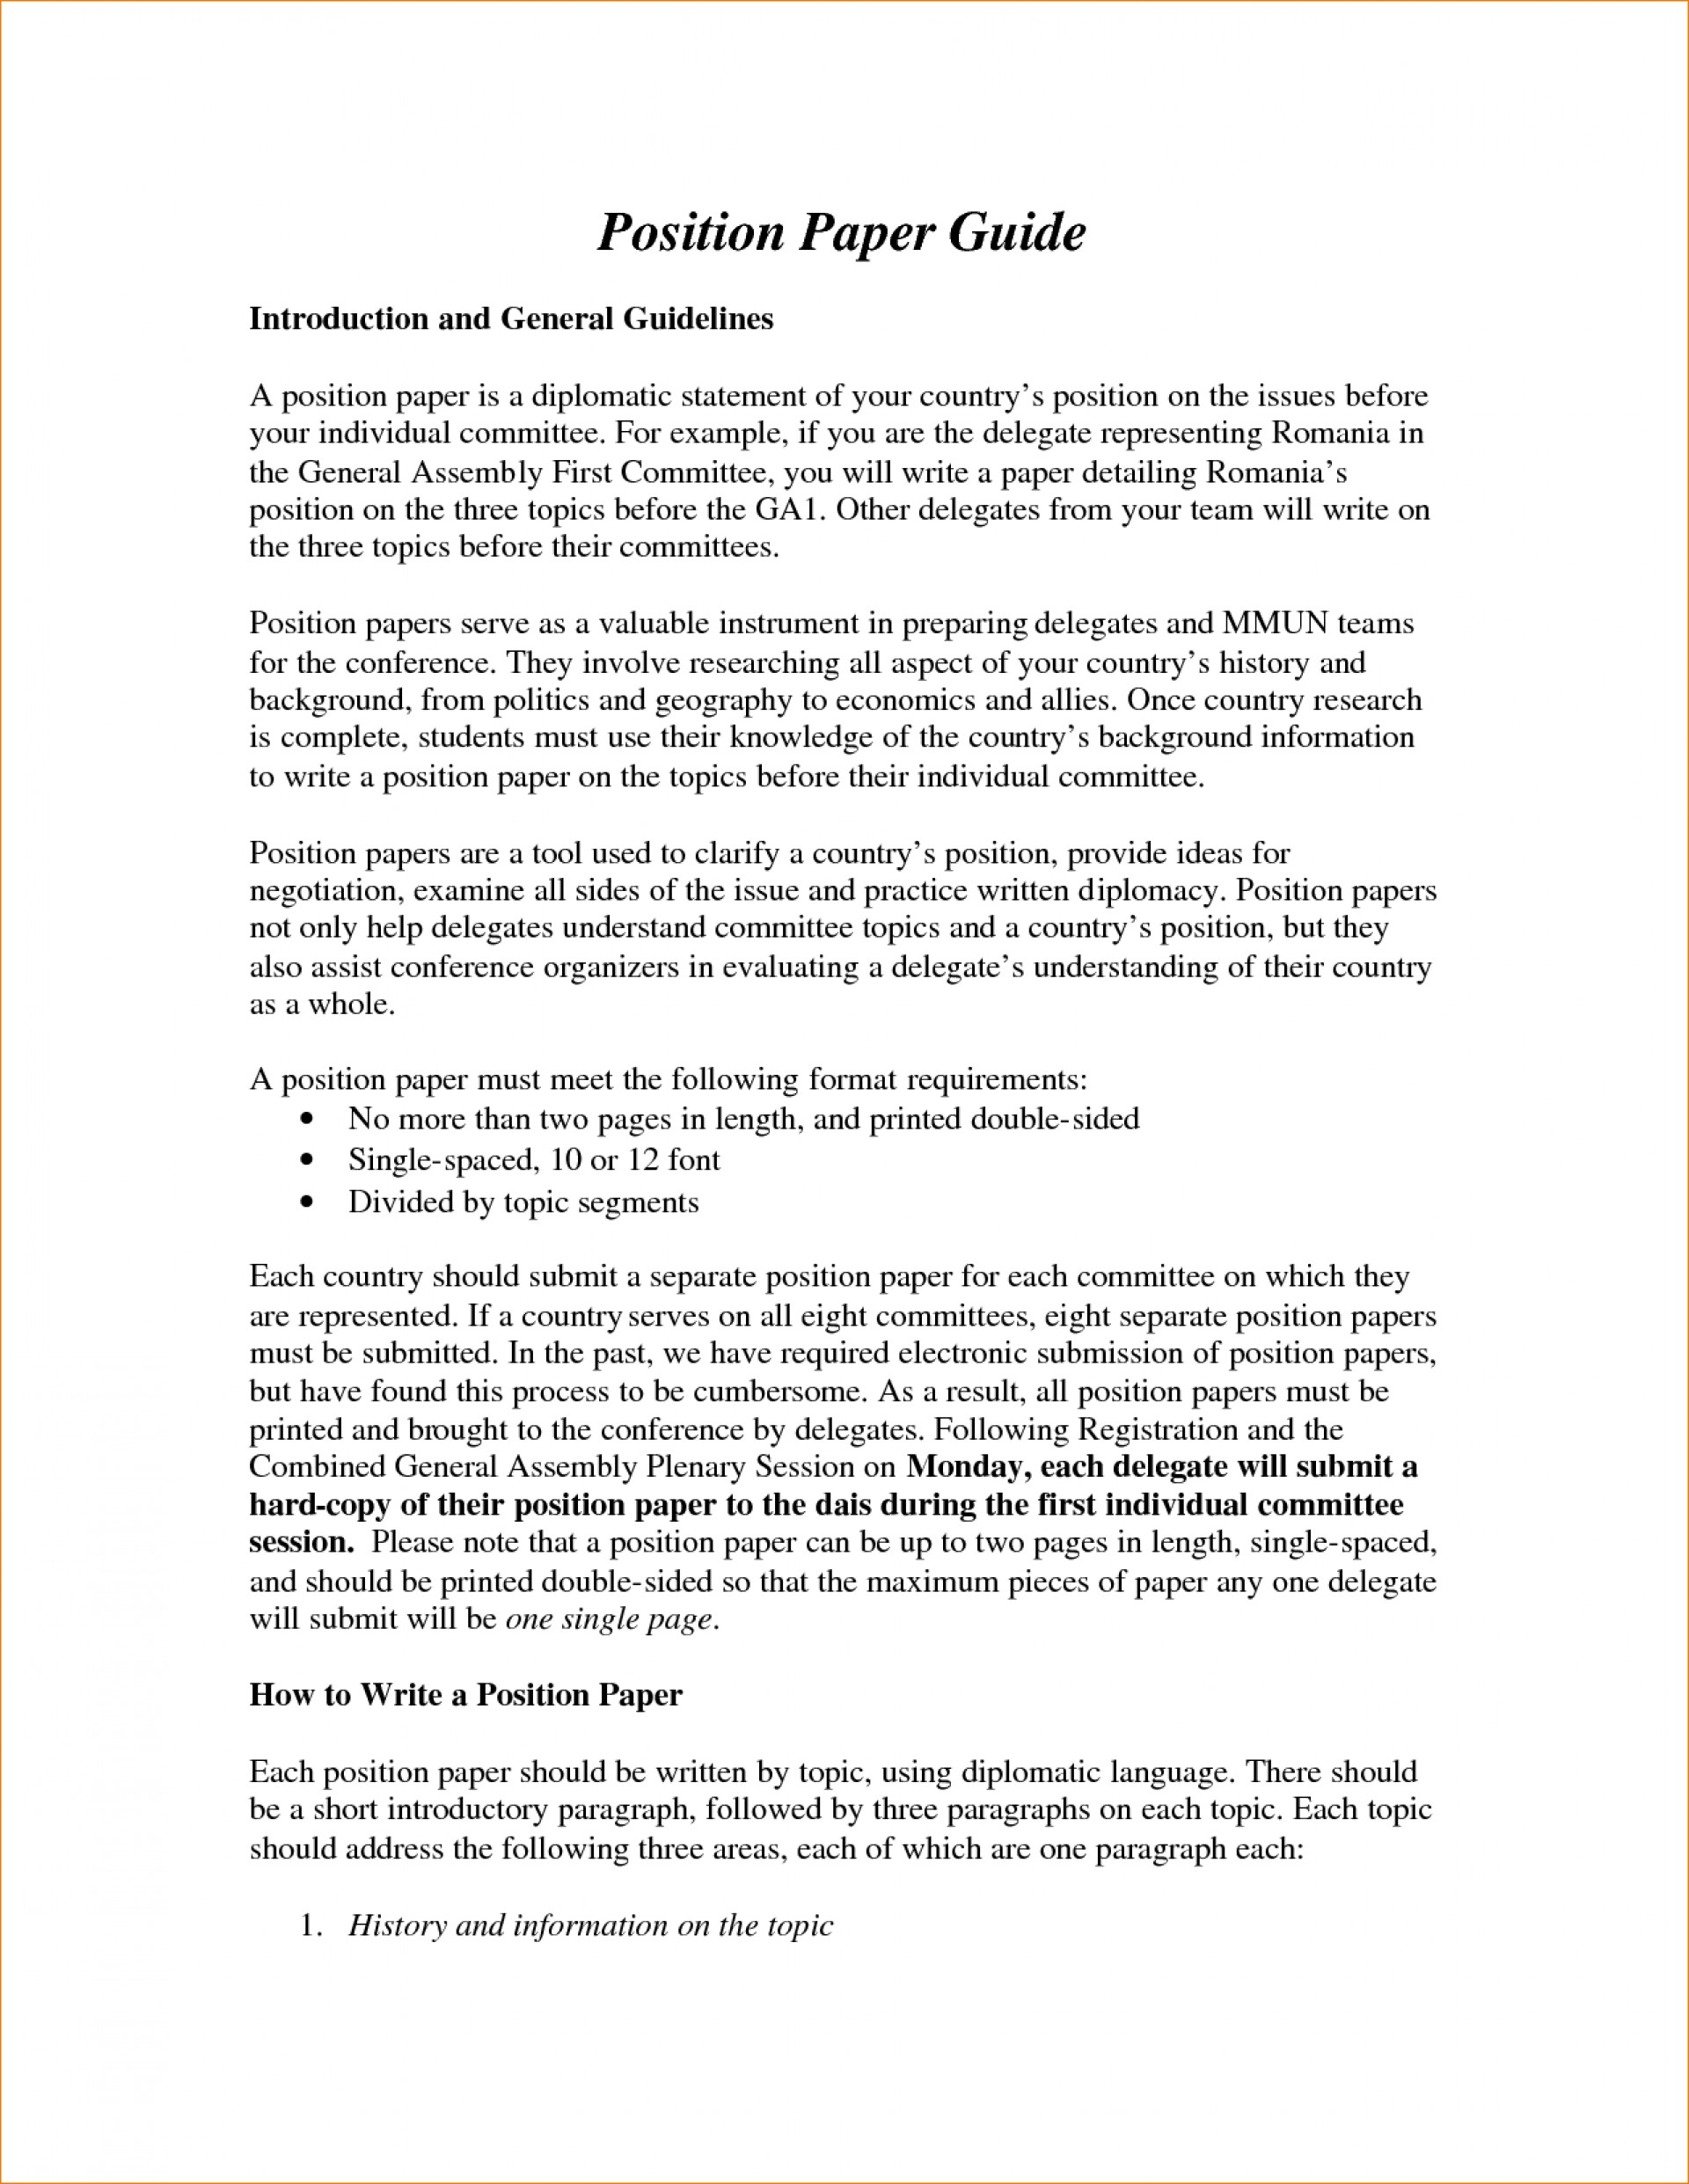 005 Research Paper Proposal Template How To Write Breathtaking A For Topic Example 1920